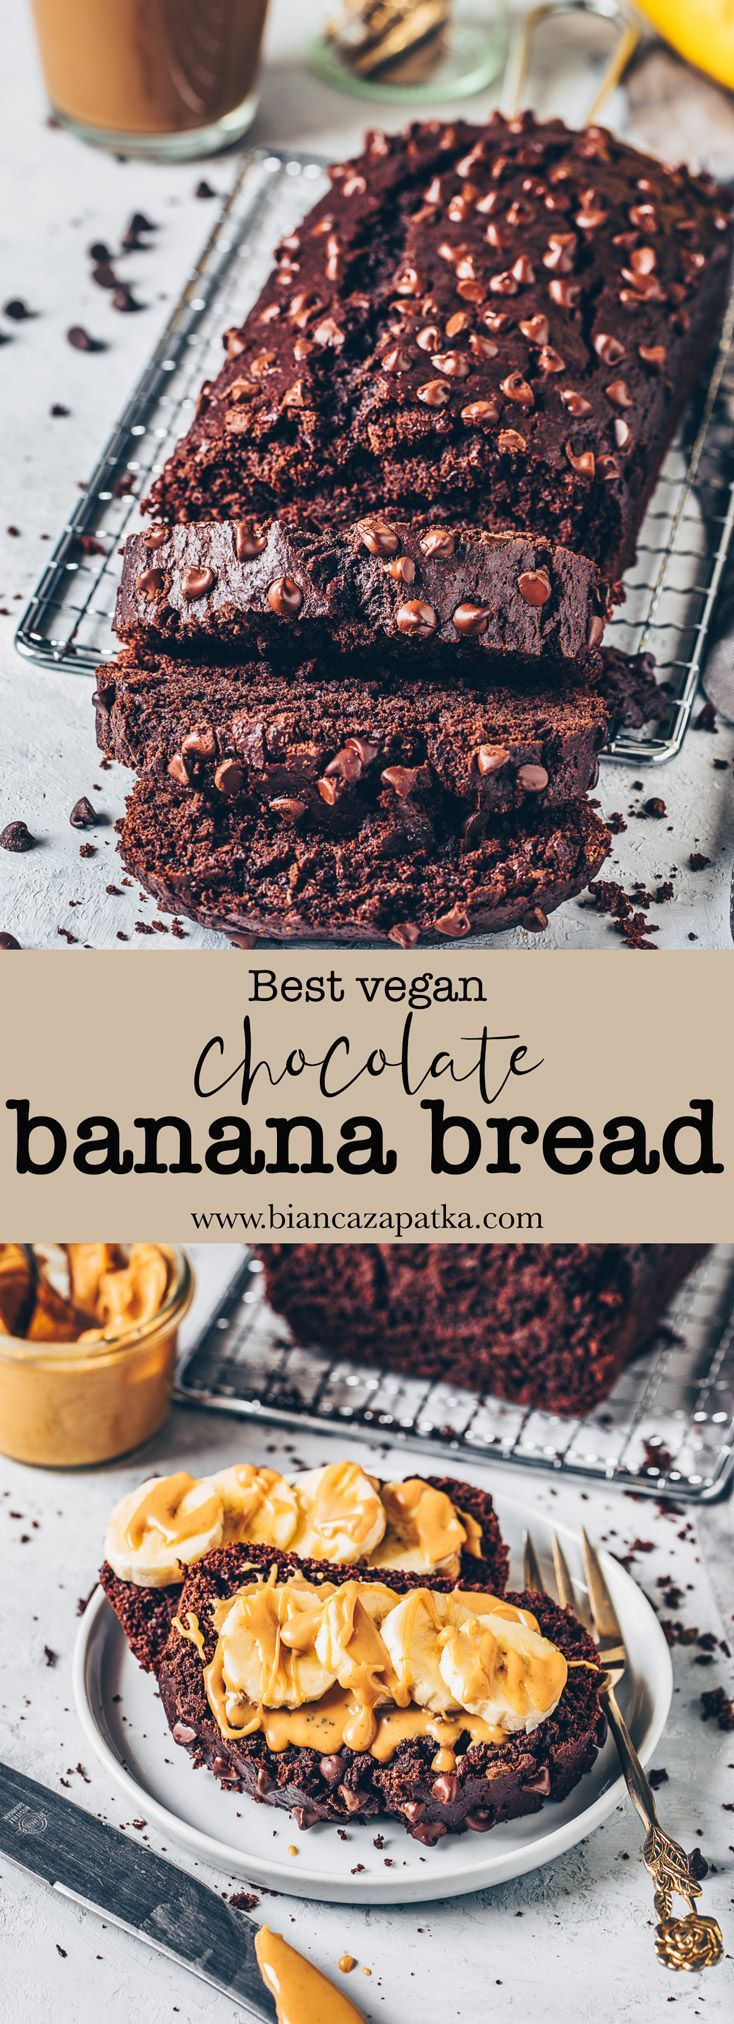 Best Vegan Chocolate Banana Bread - Bianca Zapatka | Recipes